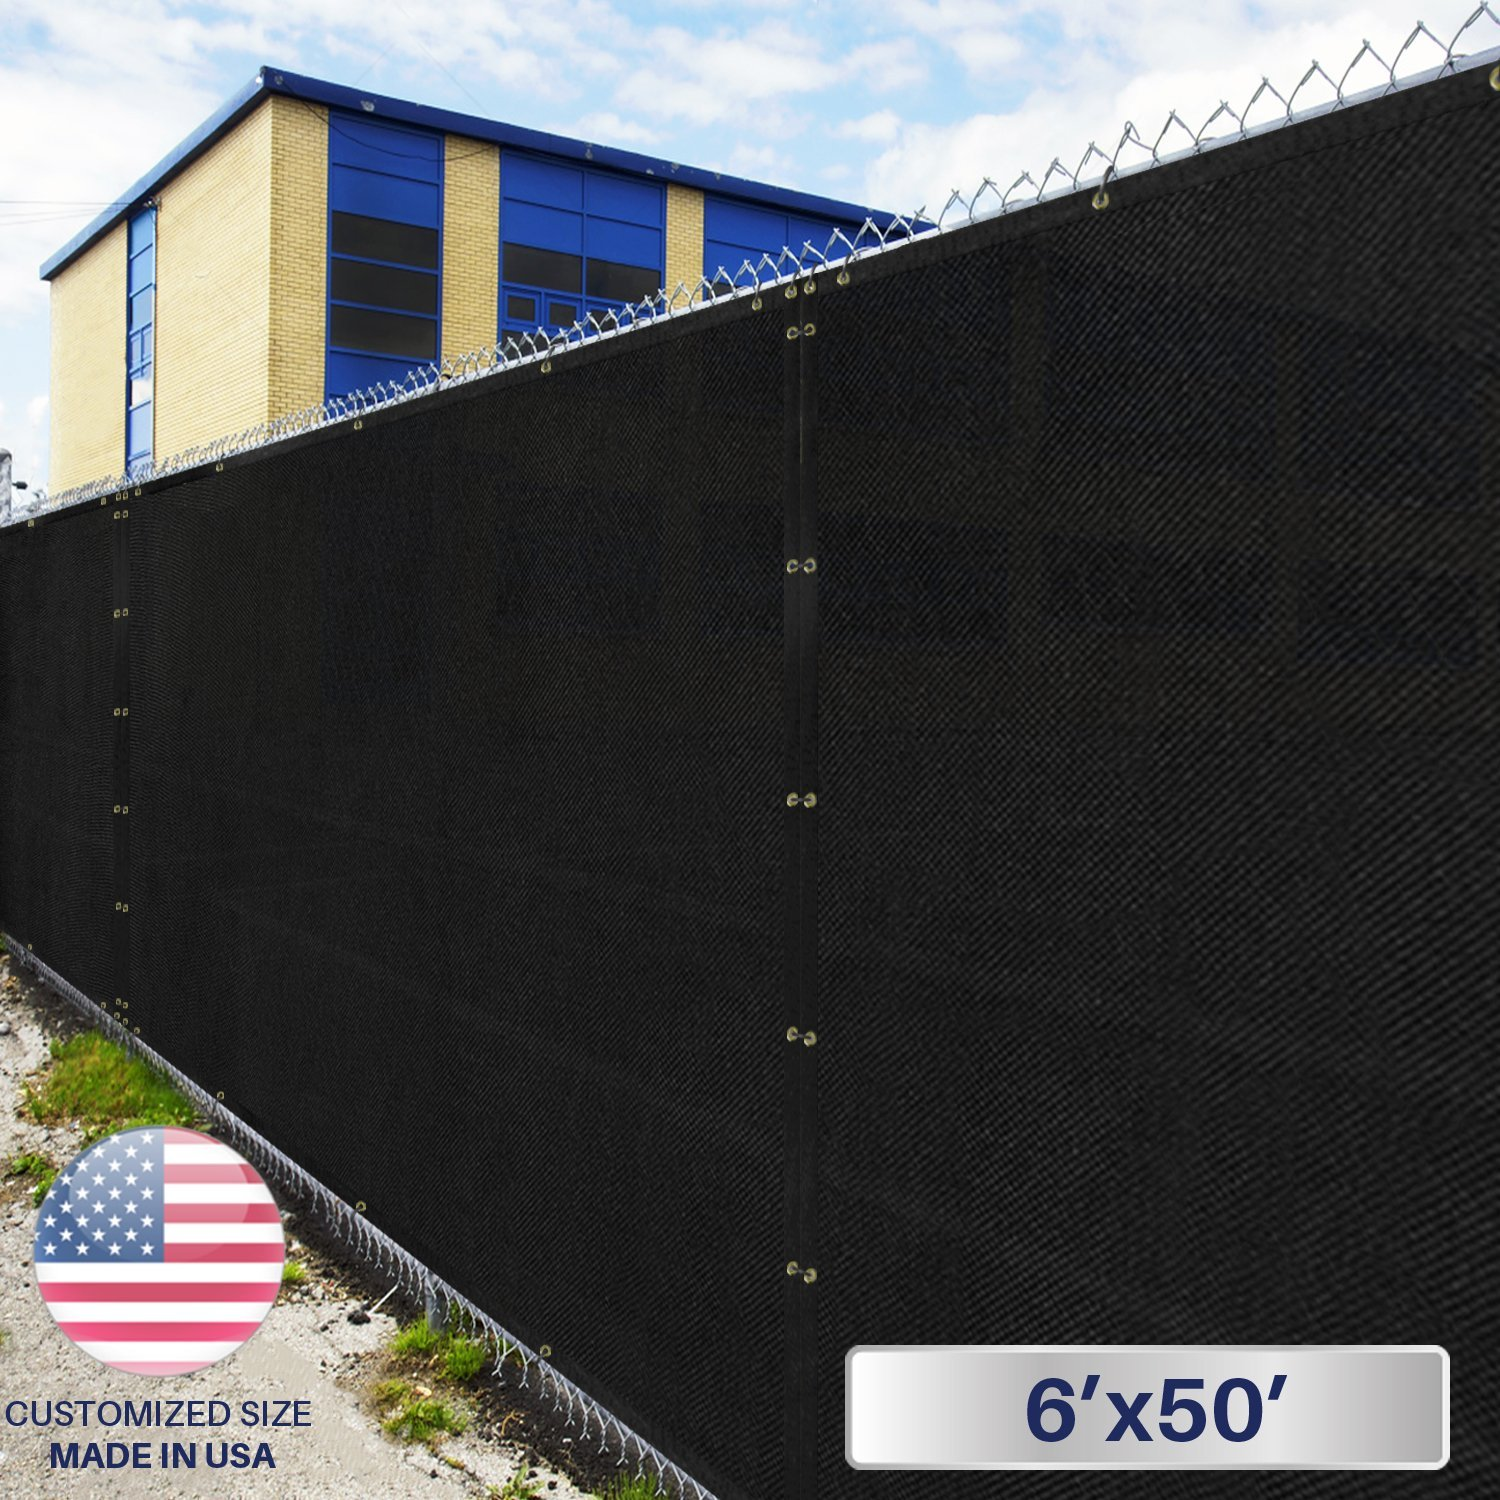 Best Rated In Decorative Fences Helpful Customer Reviews Fence Gate For Transitional Putting Up Electric Windscreen4less Heavy Duty Privacy Screen Color Solid Black 6 X 50 Brass